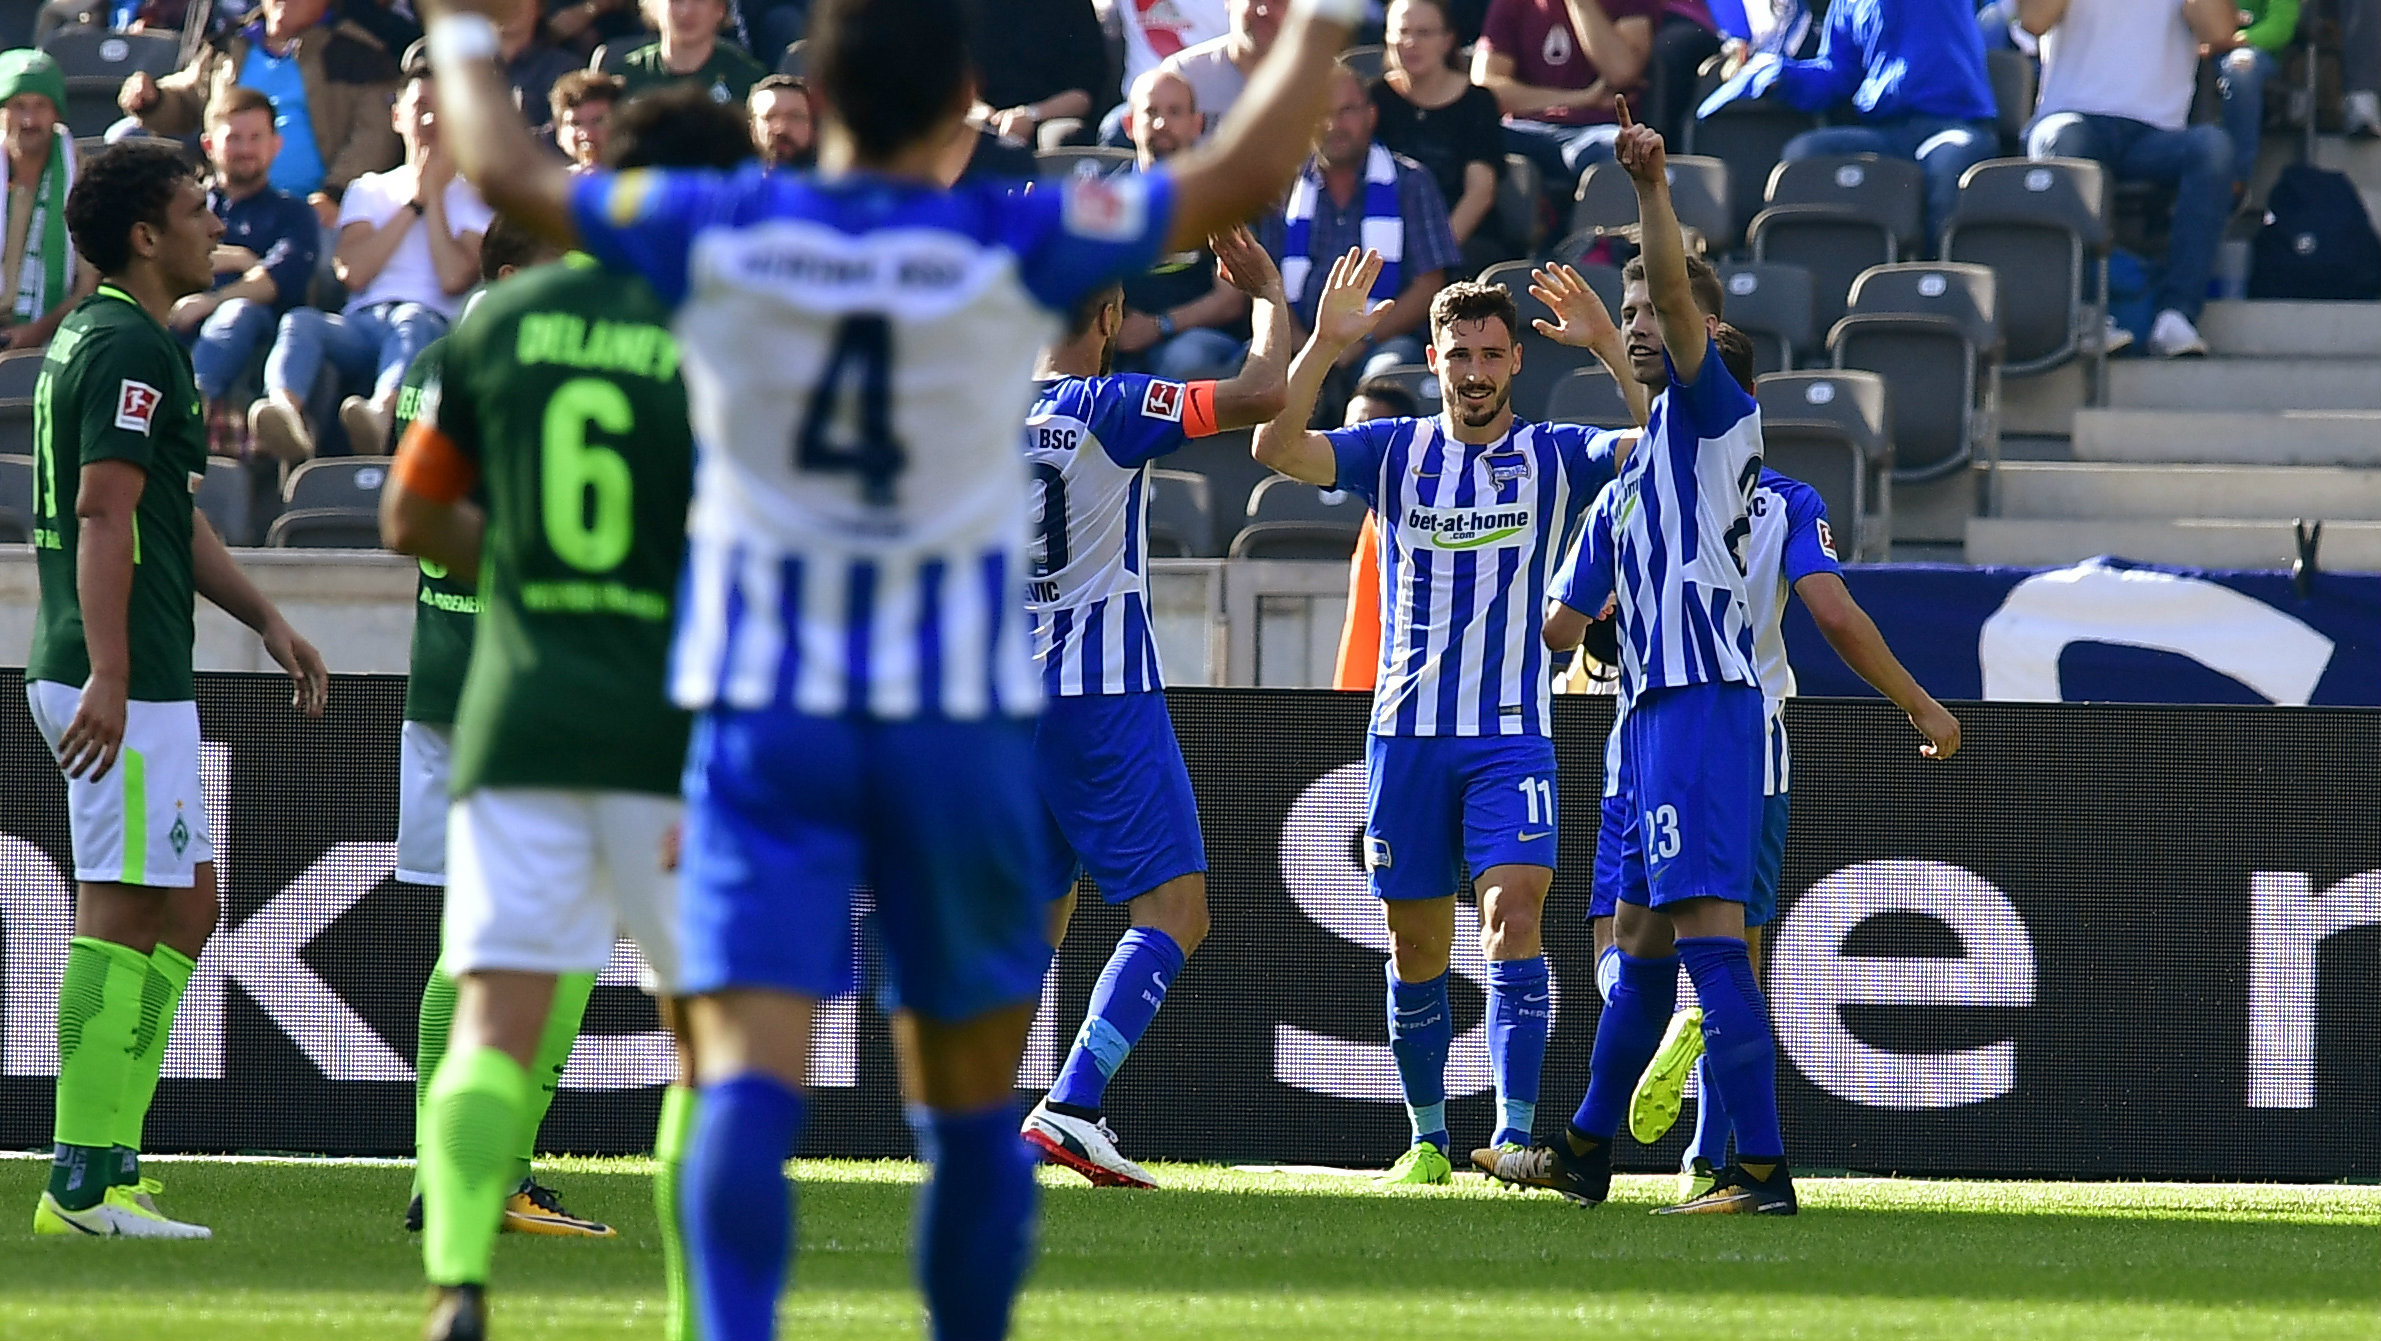 Mathew Leckie continued his stunning start to his Hertha Berlin career